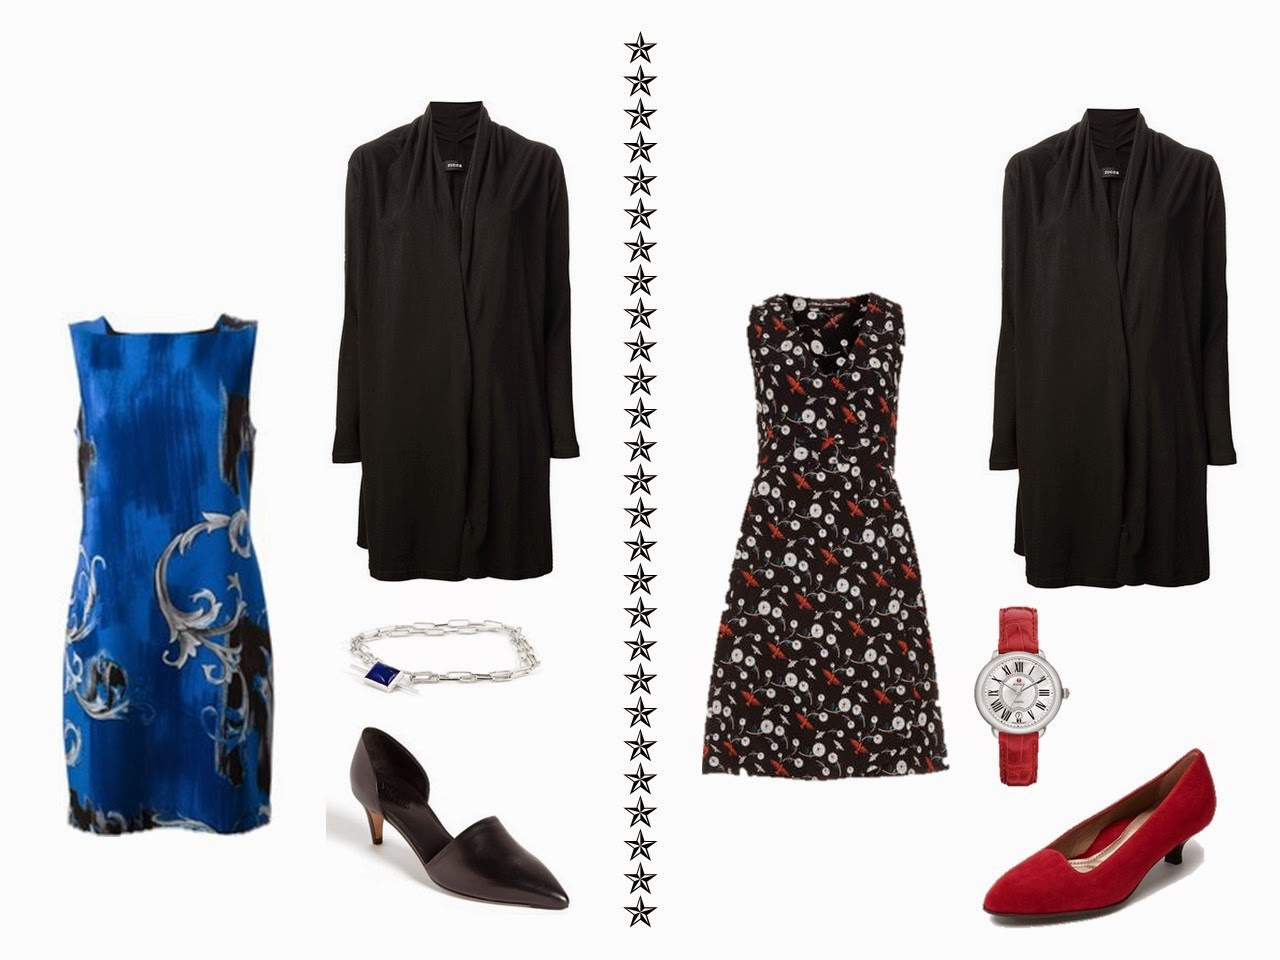 Black cardigan with a blue floral dress, and with a black, white and red floral dress